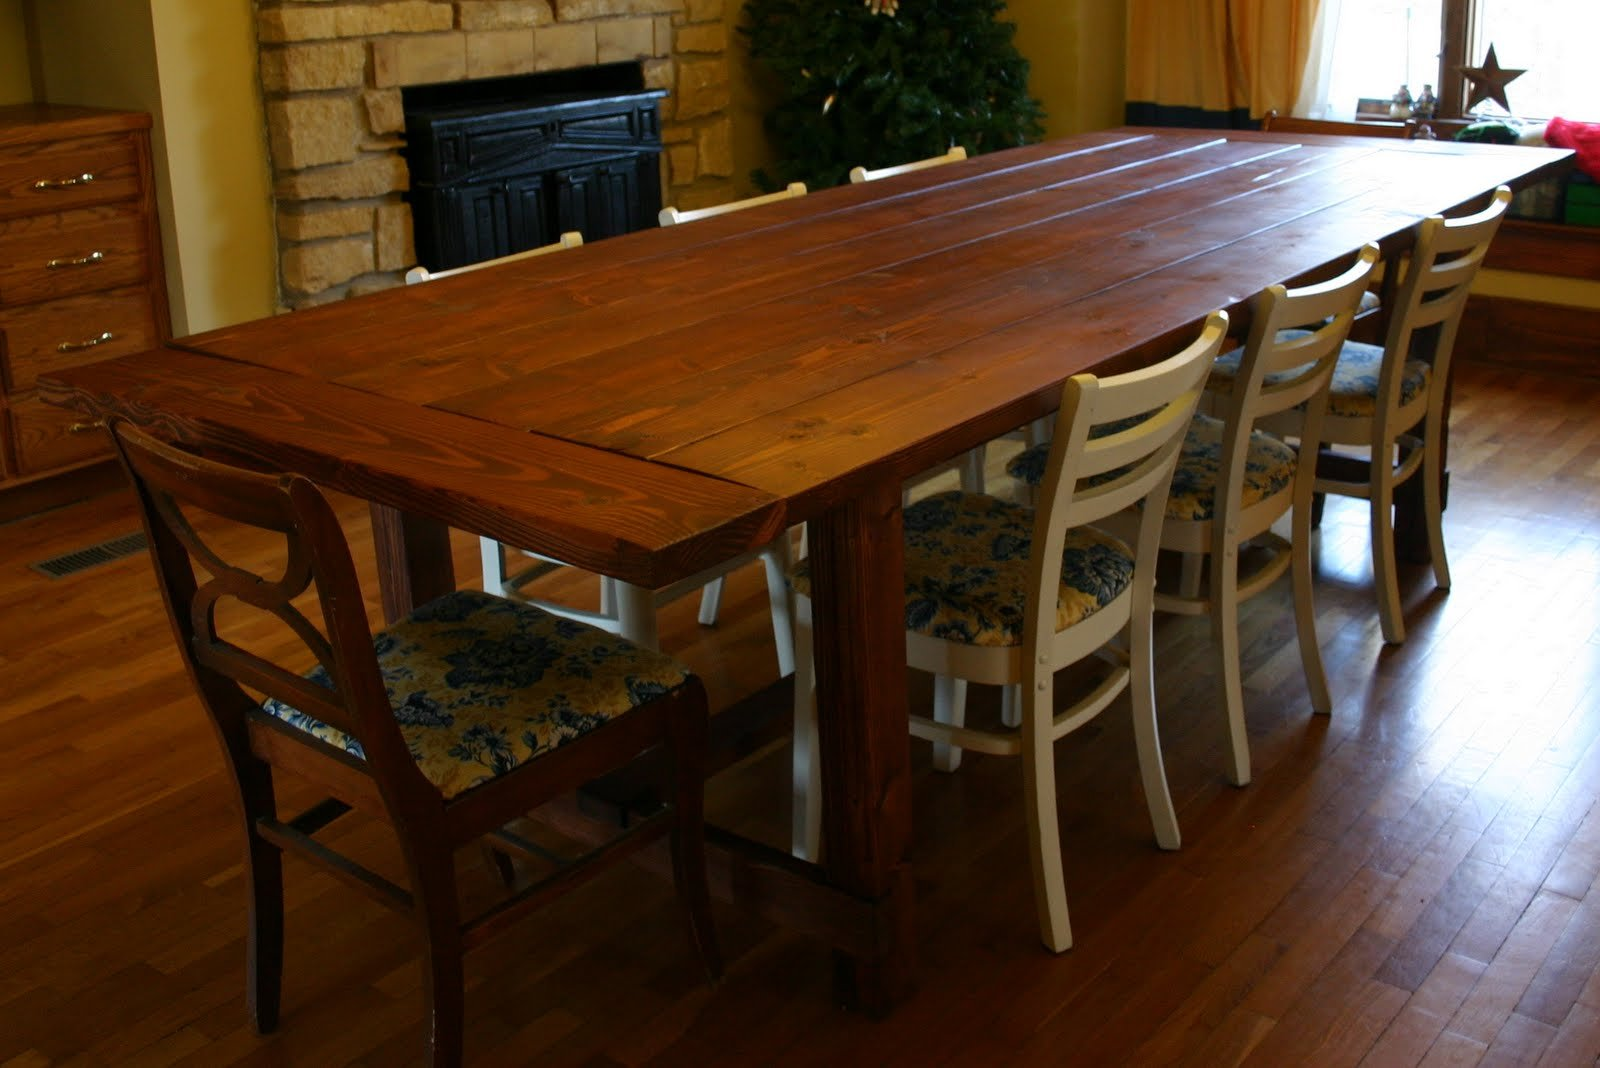 German jello salad rustic dining table i built from free for Rustic dining room table plans